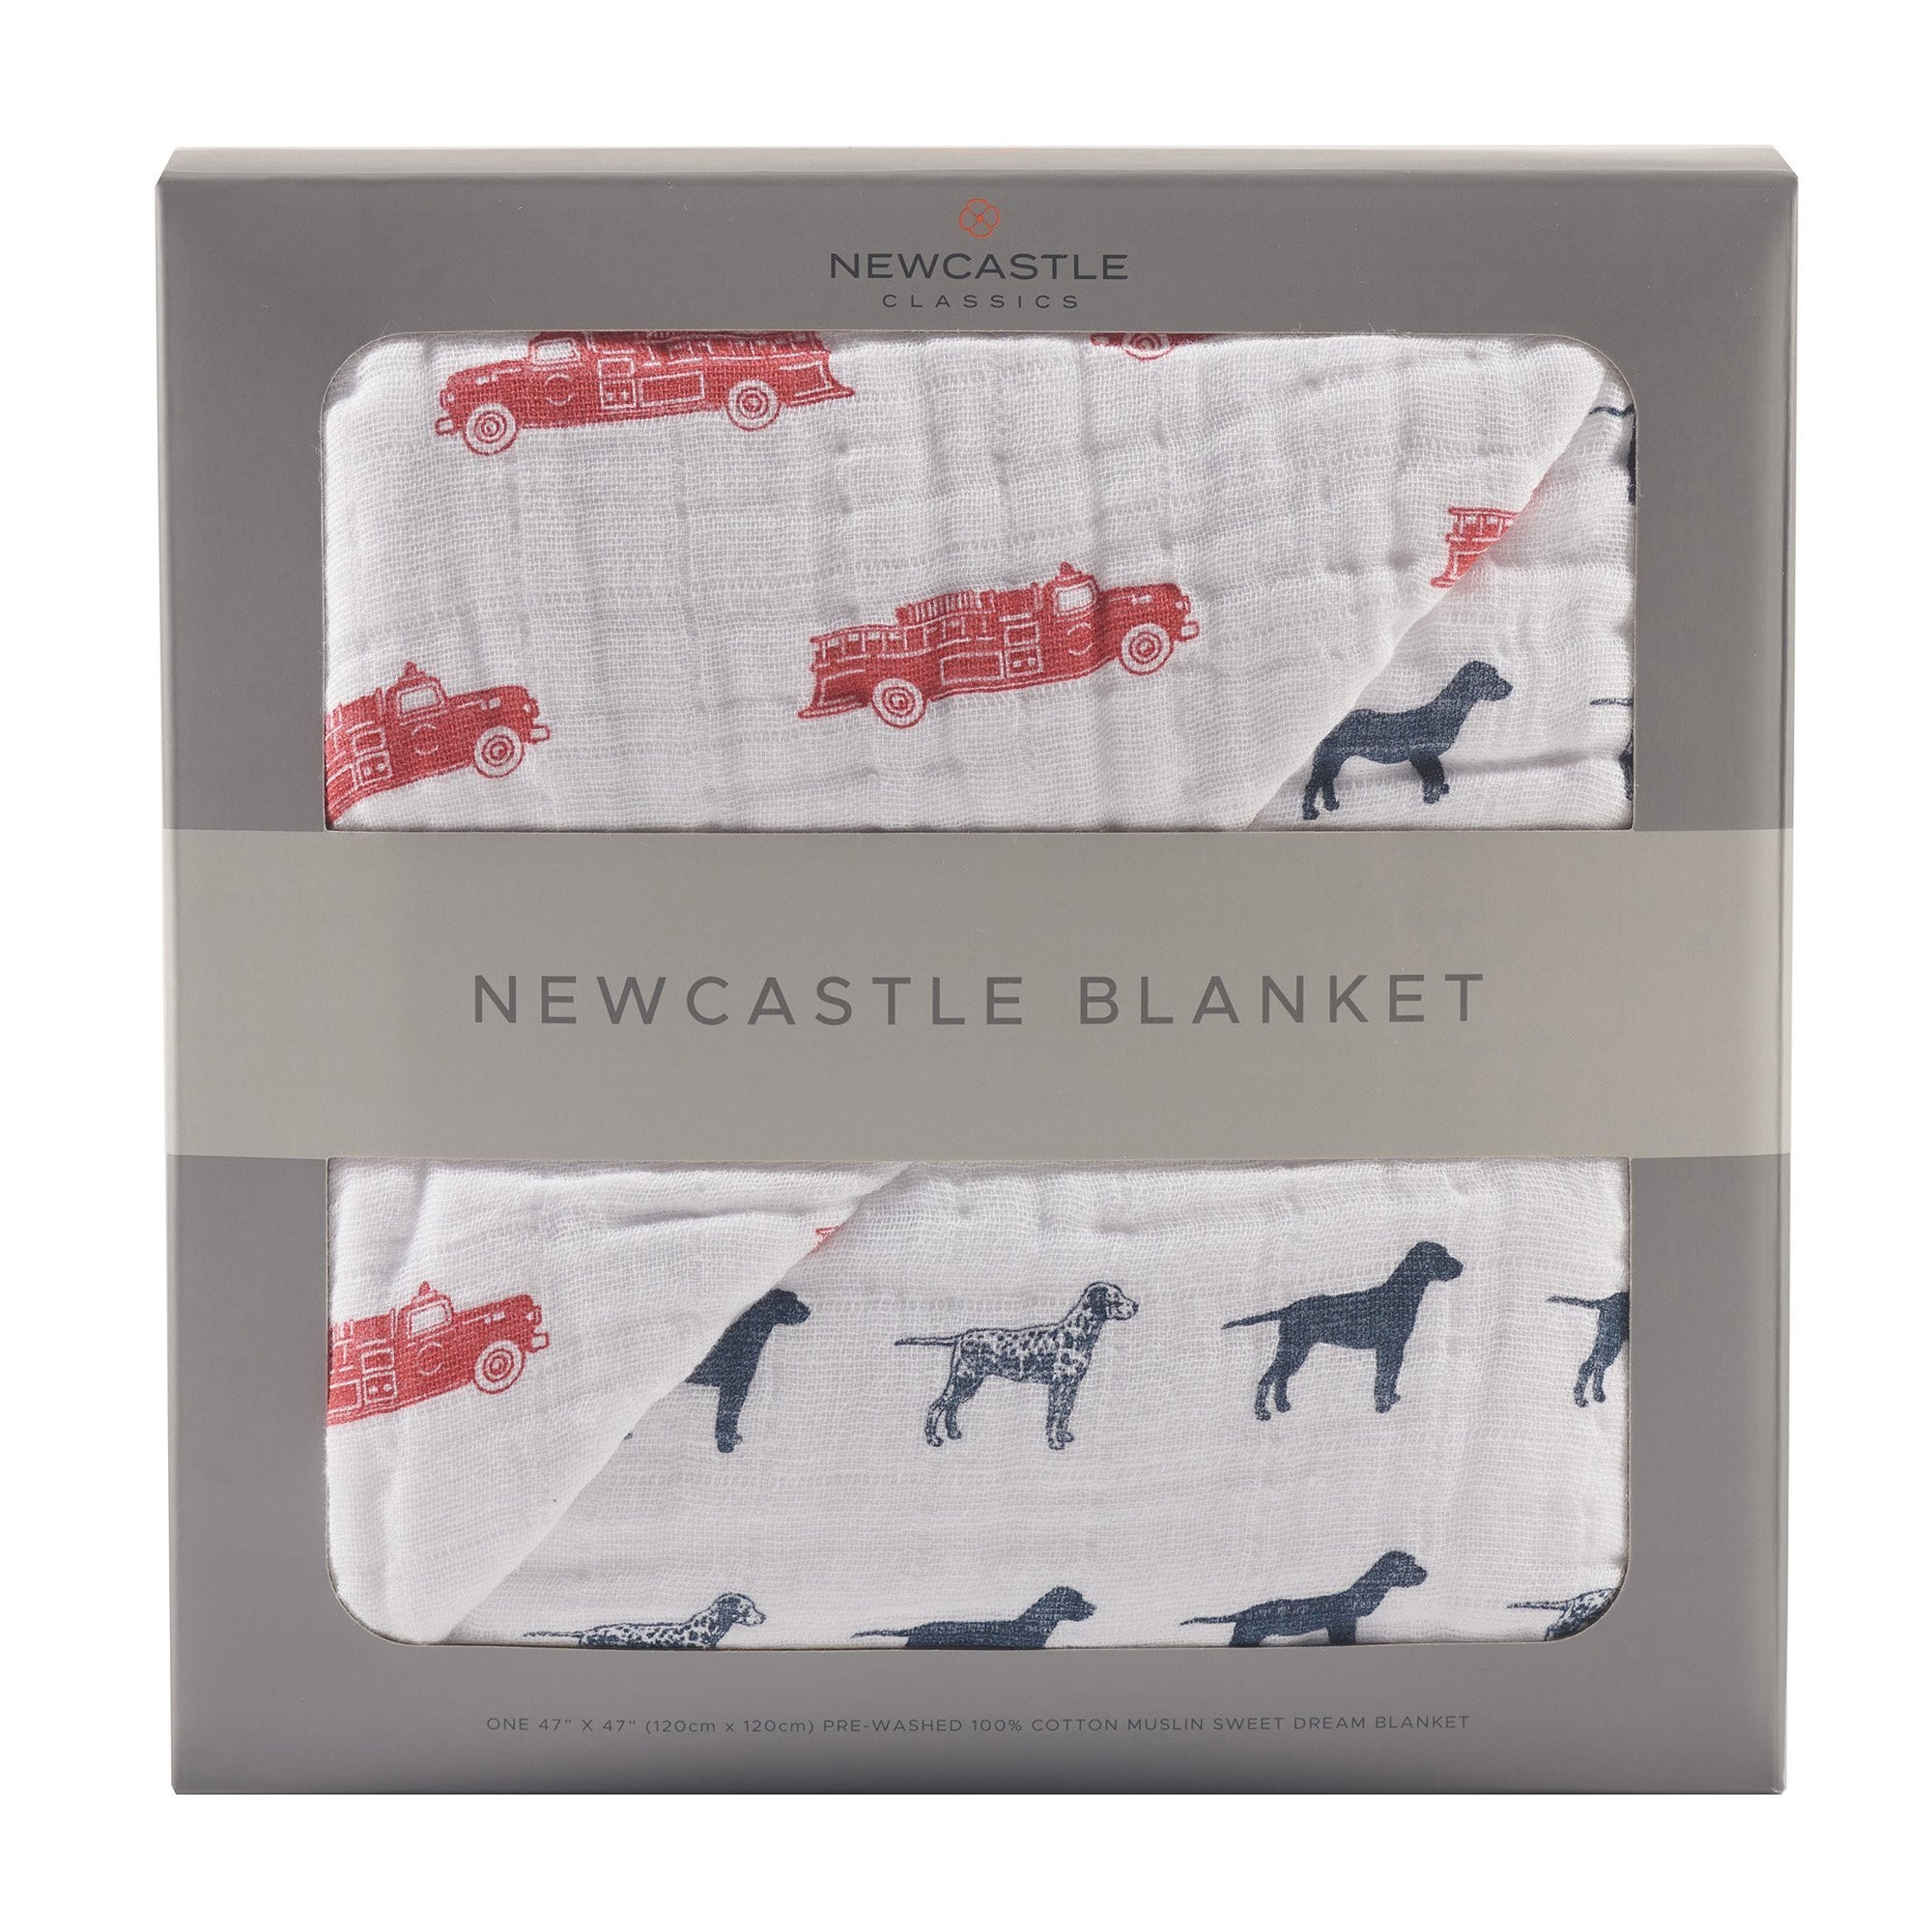 Fire Truck & Dalmatian Newcastle Blanket - Baby World Inc